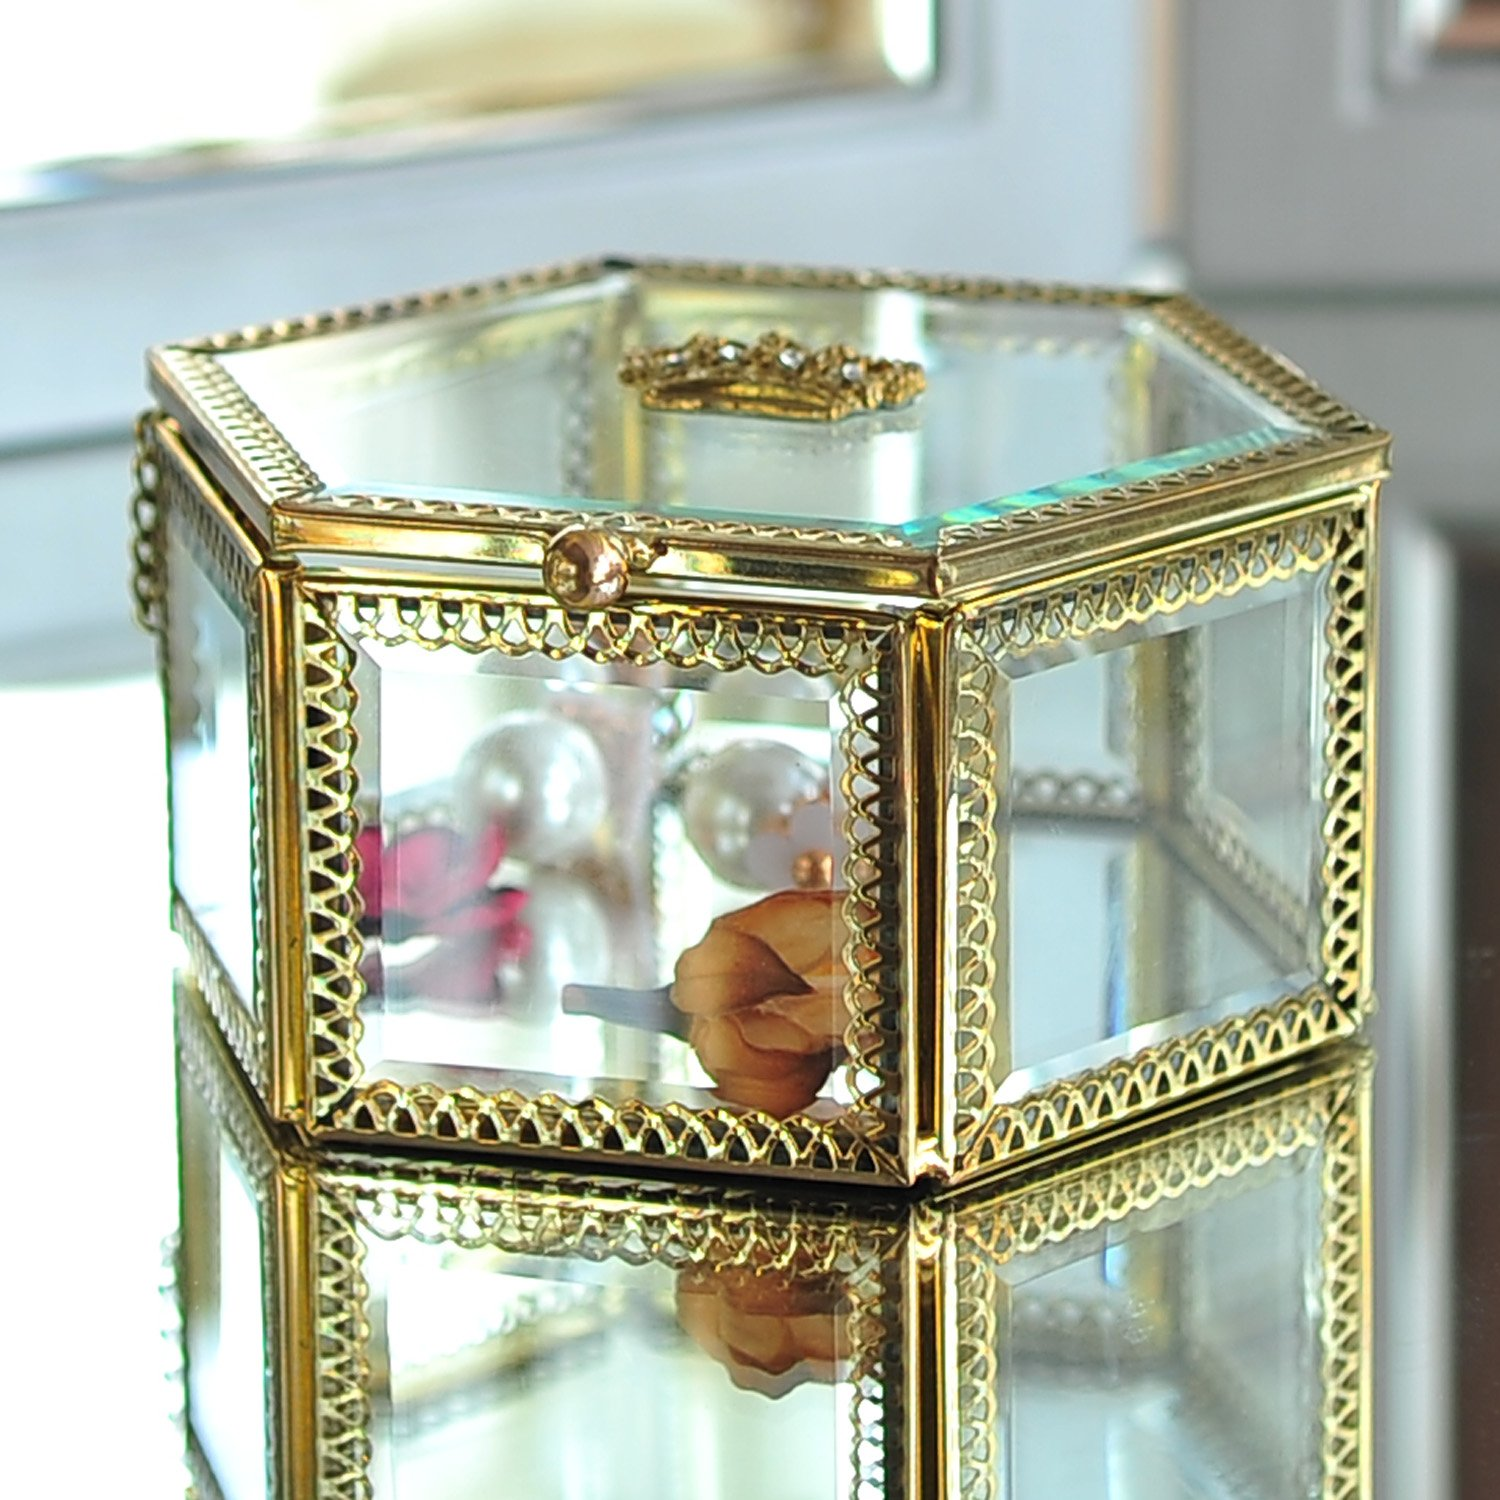 Hexagonal Clear Glass & Brass Metal Hinged Top Lid Plant Terrarium Box / Tabletop Display Case by Hersoo